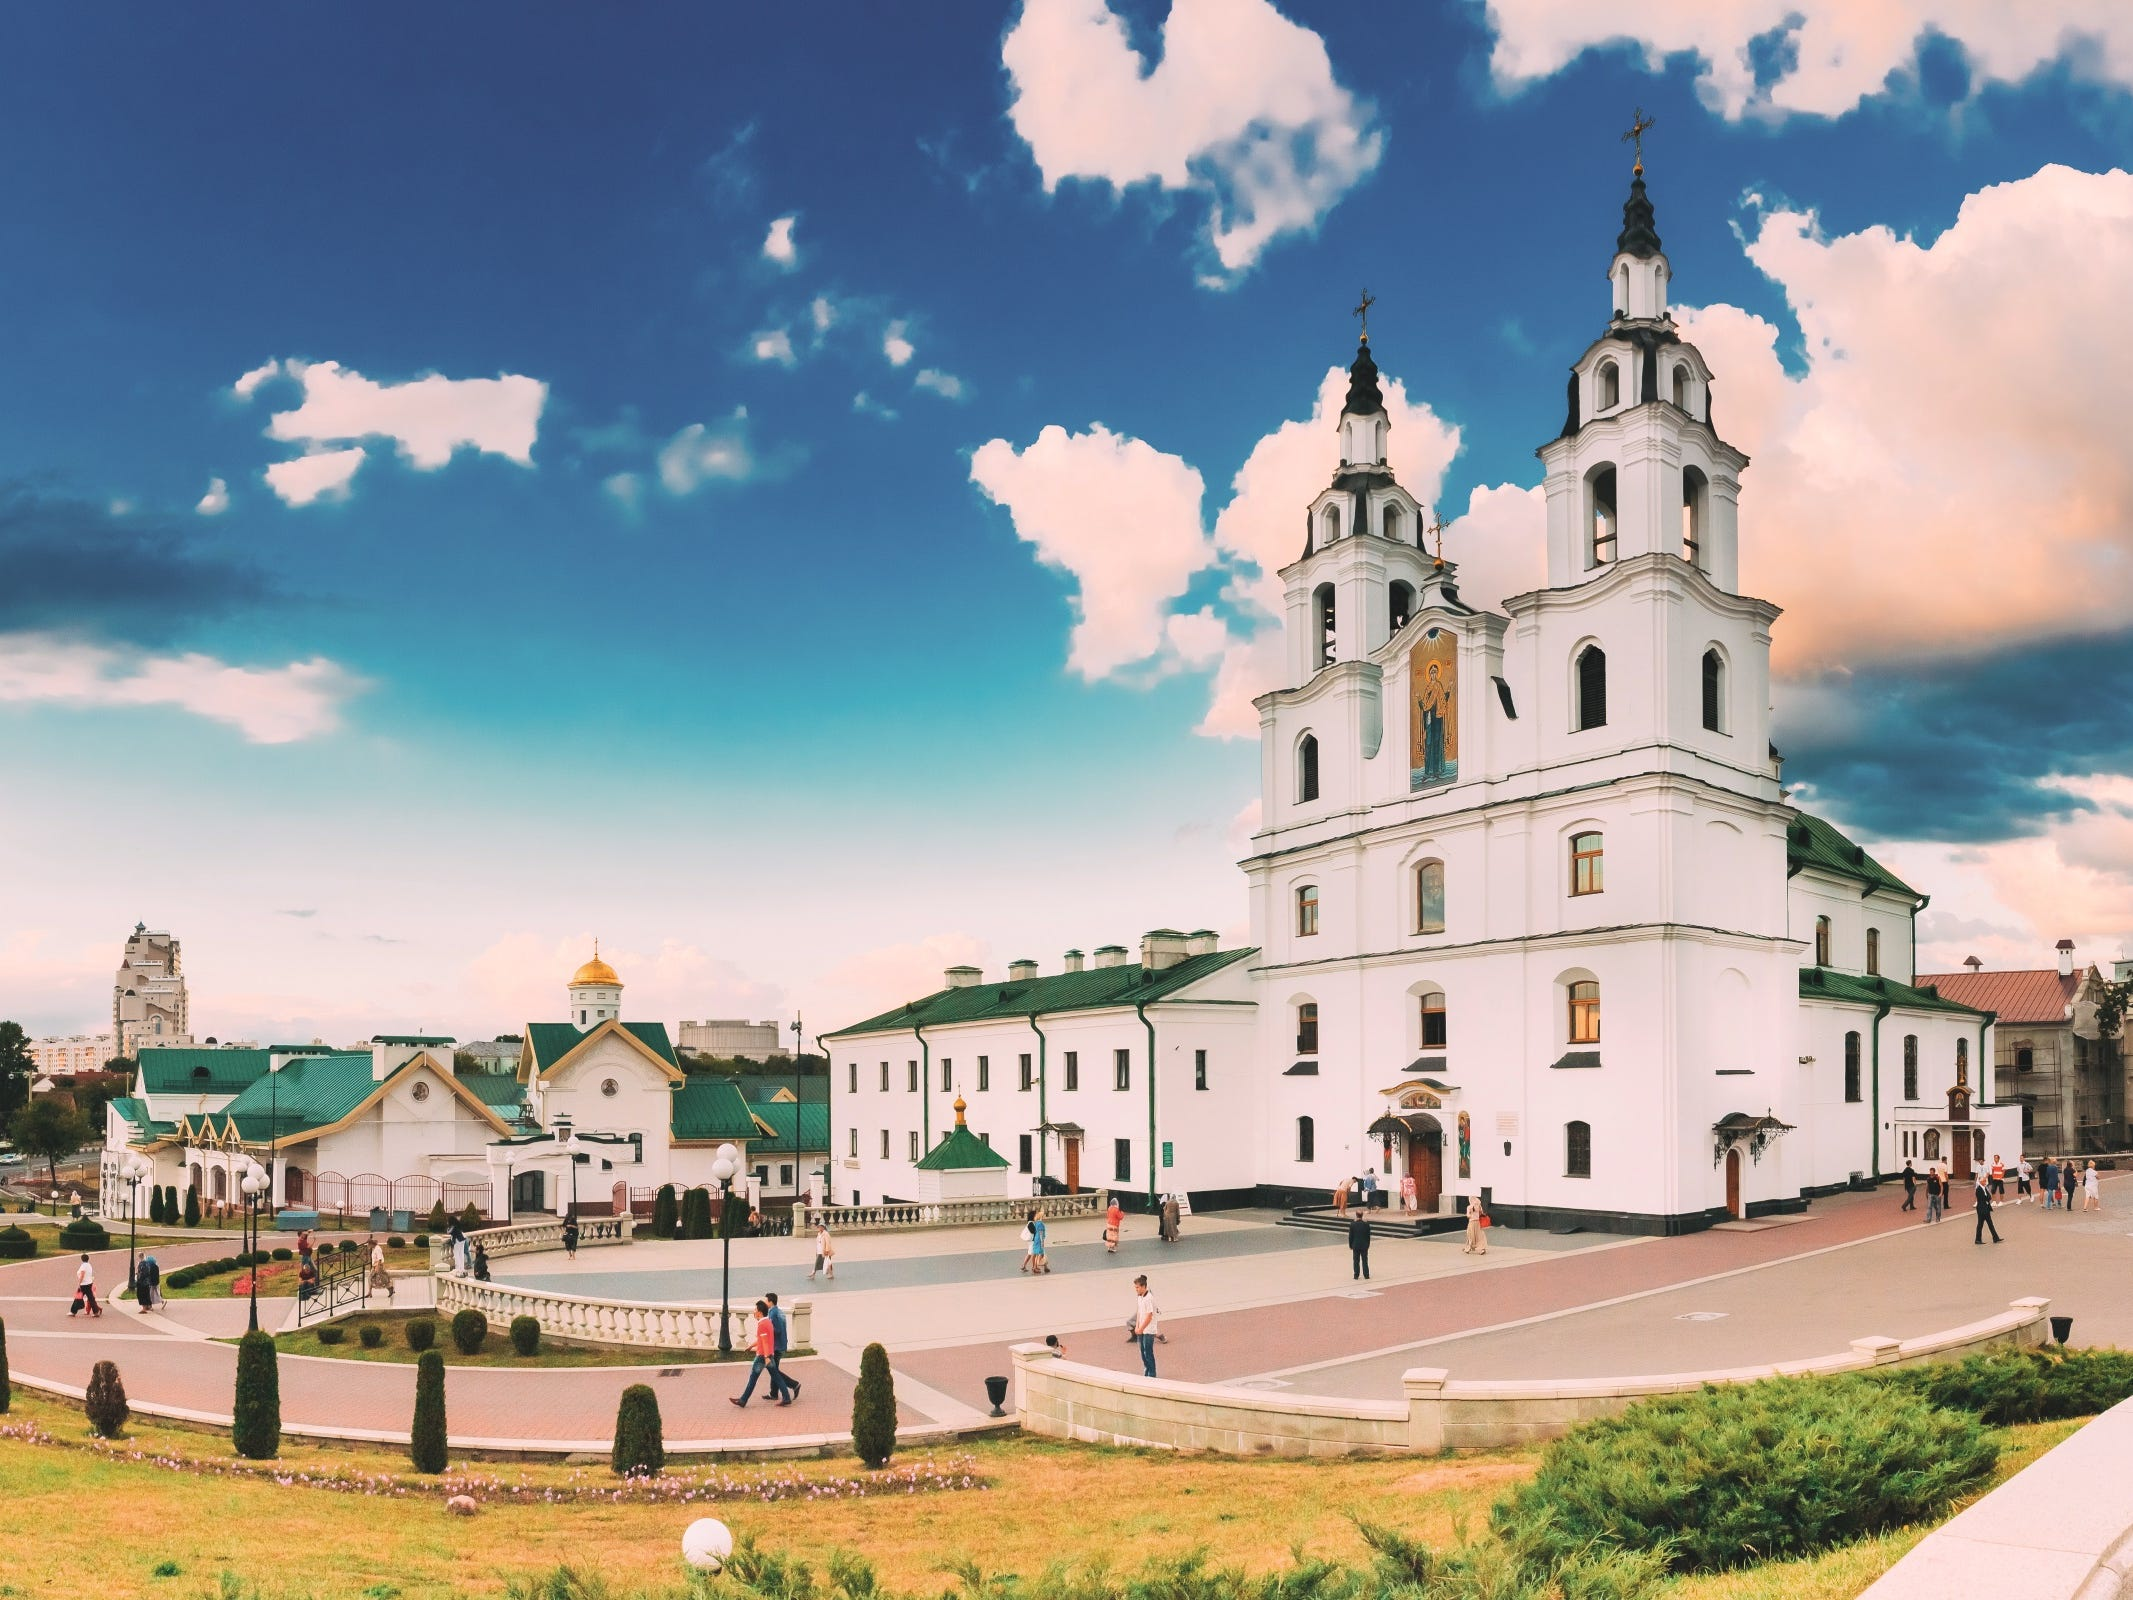 No. 8 on the list of top 10 countries to visit in 2019 is Belarus. No longer just a curiosity, Belarus has declared itself open for business – and the time to go is now.